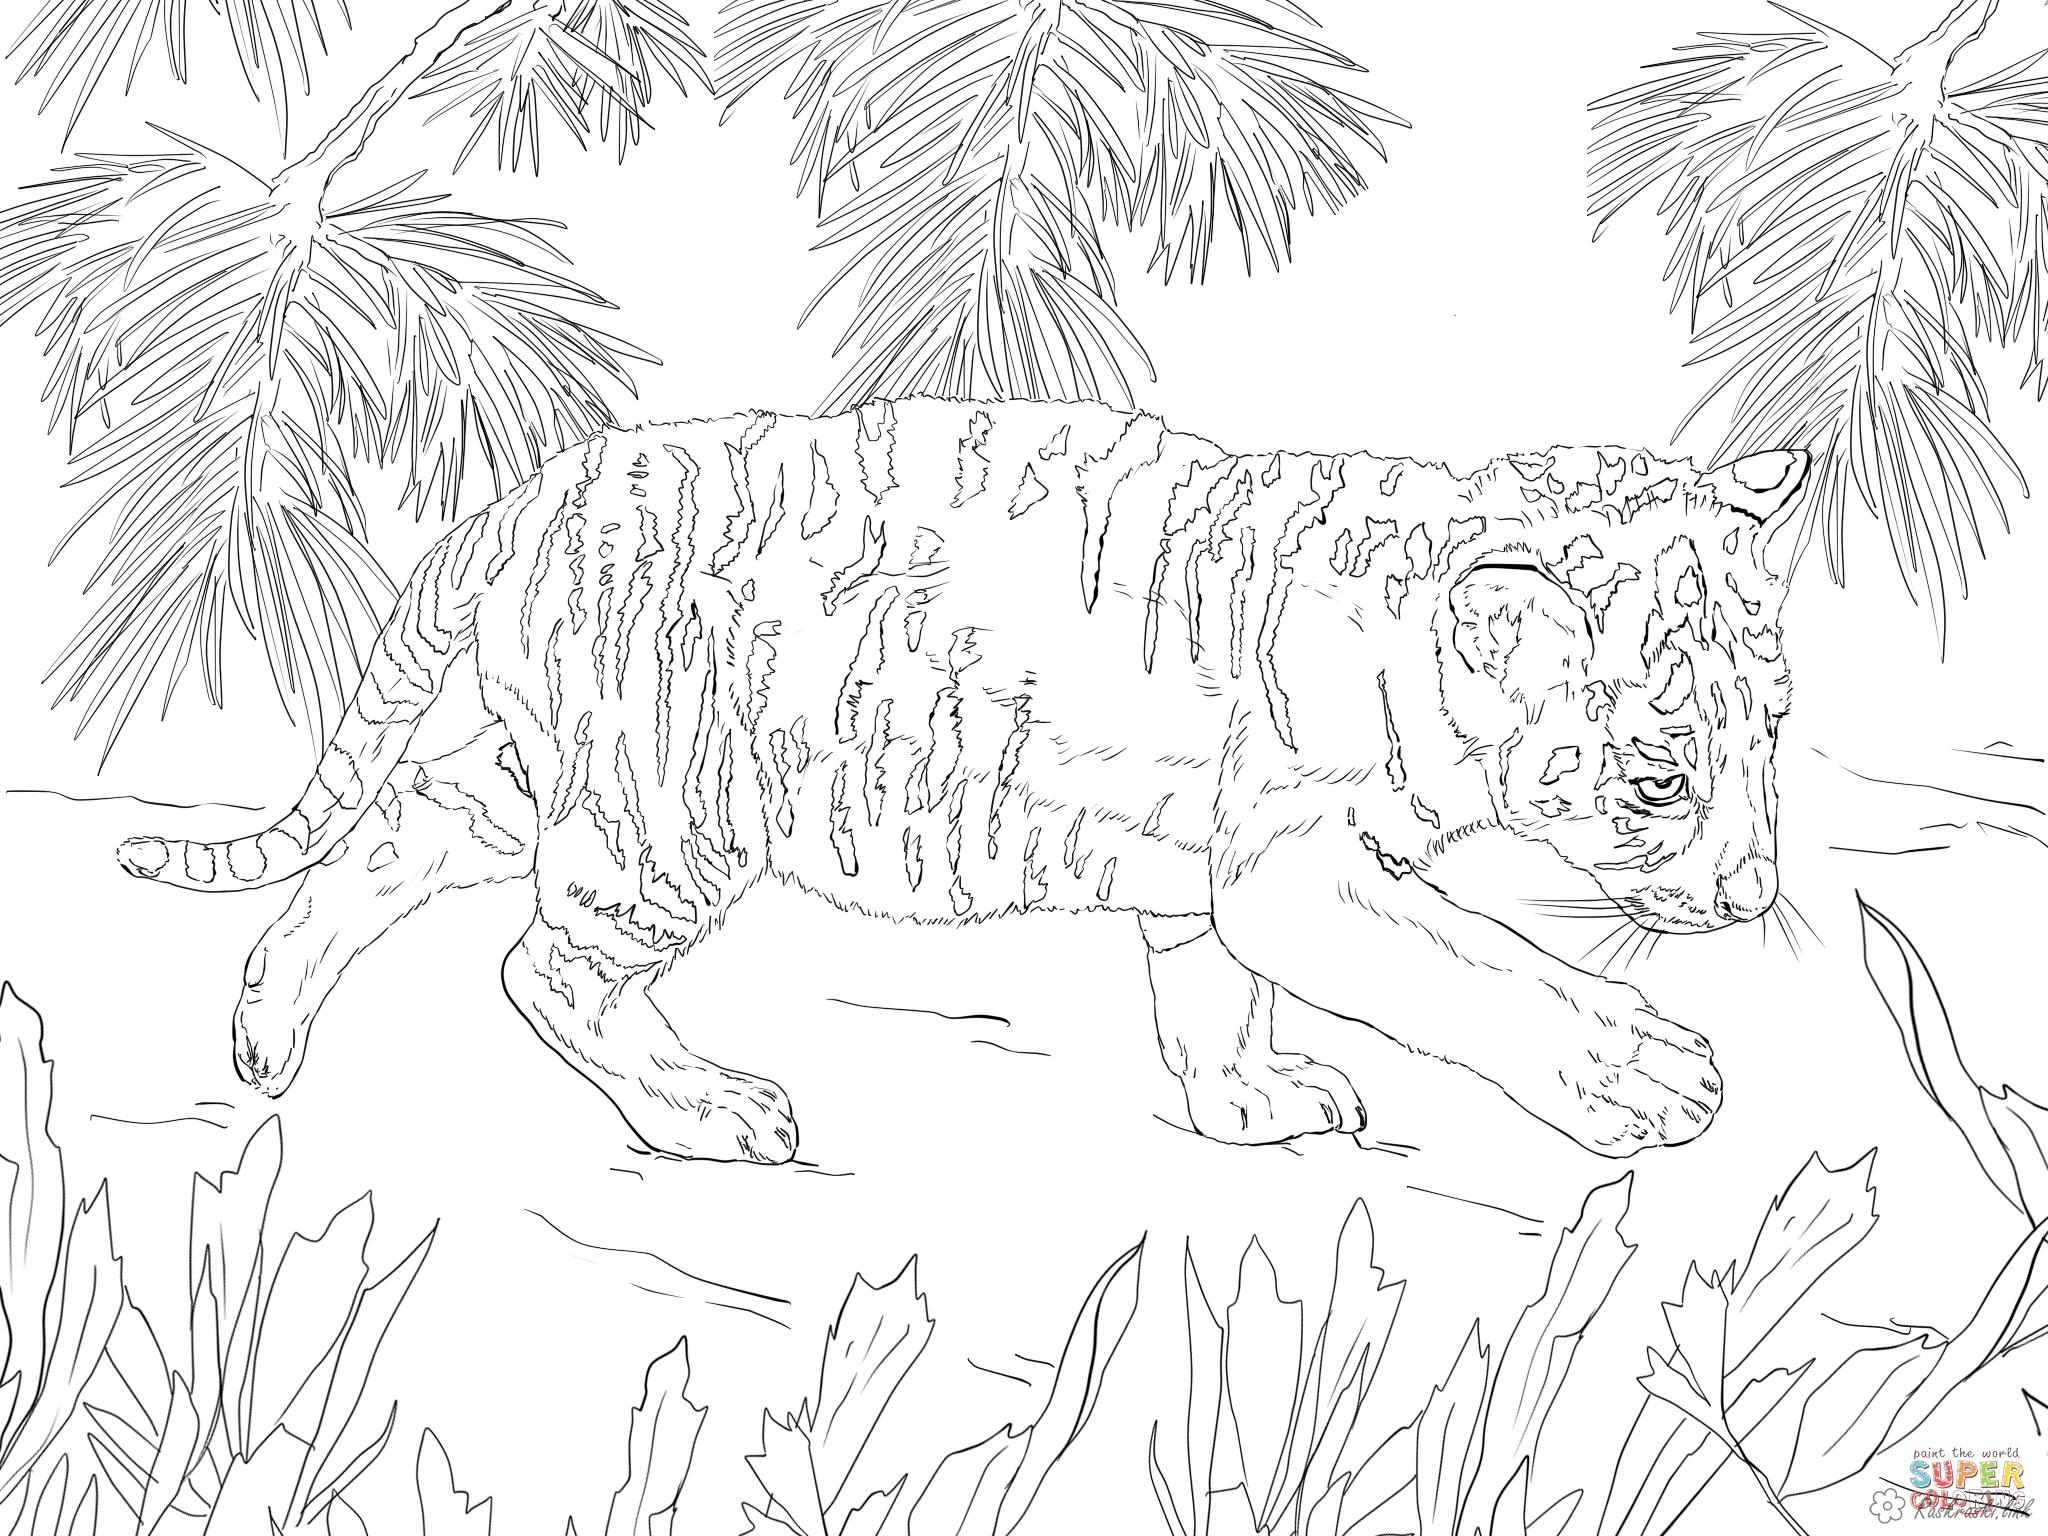 Coloring Tiger tiger, forest, grass, nature